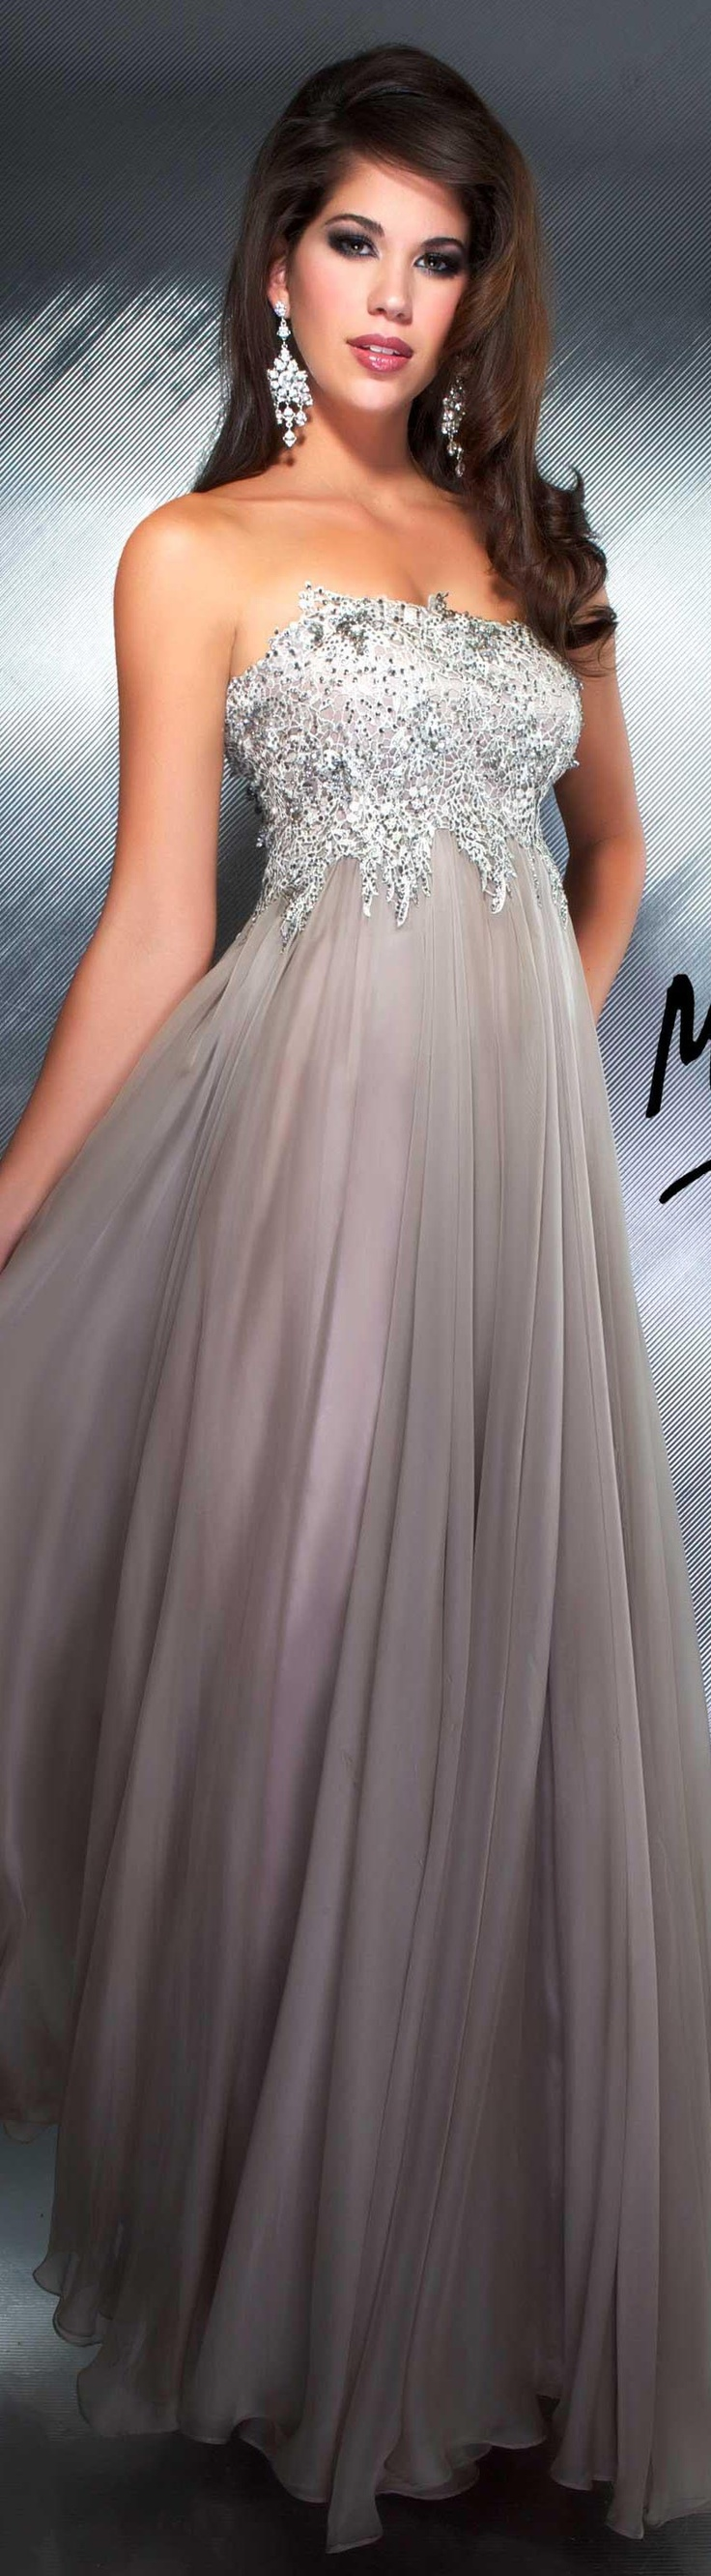 Mac Duggal couture dress platinum COUTURE DRESSES STYLE 55005D #long #formal #dress like for prom but would like something more flowy